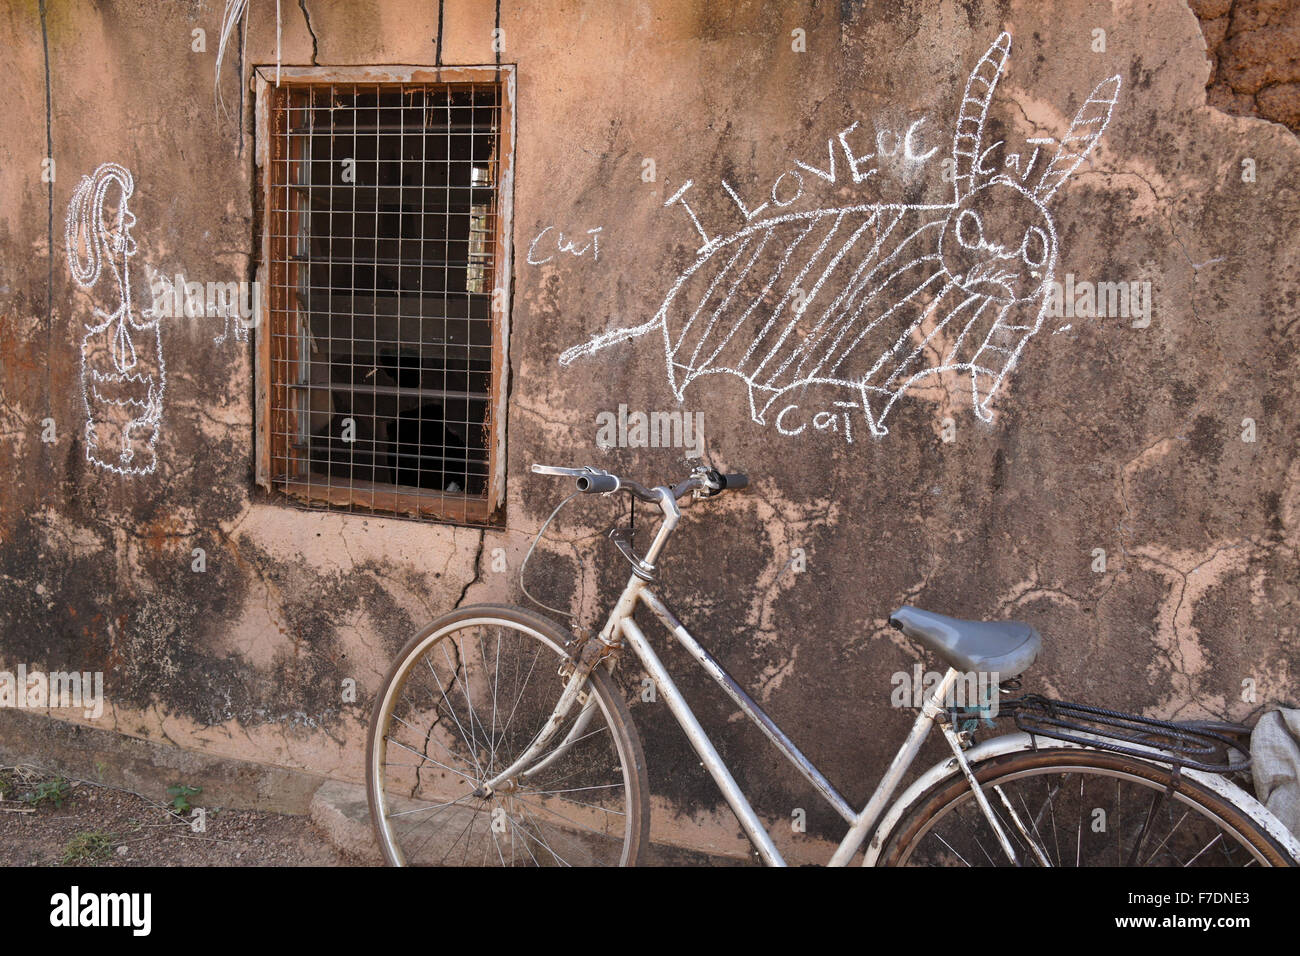 A child's chalk drawings on side of mud house, Saakpuli village, northern Ghana - Stock Image